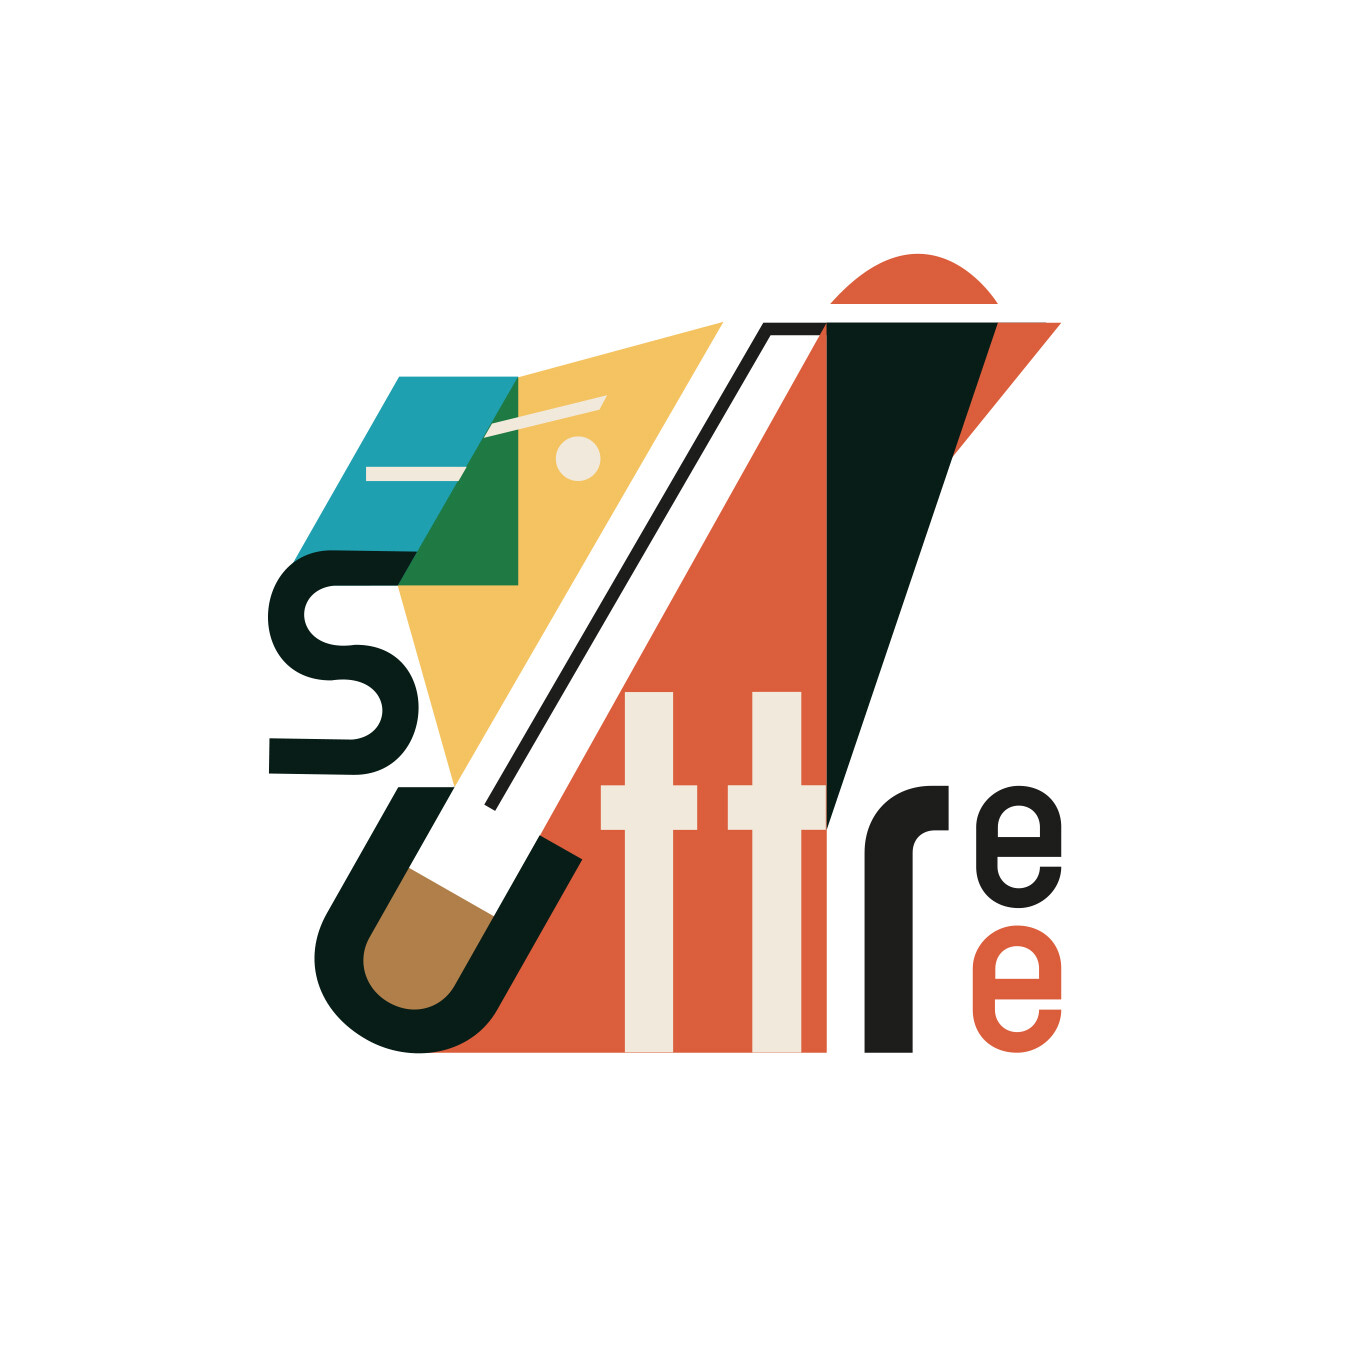 Suttree, Coffee bar logo